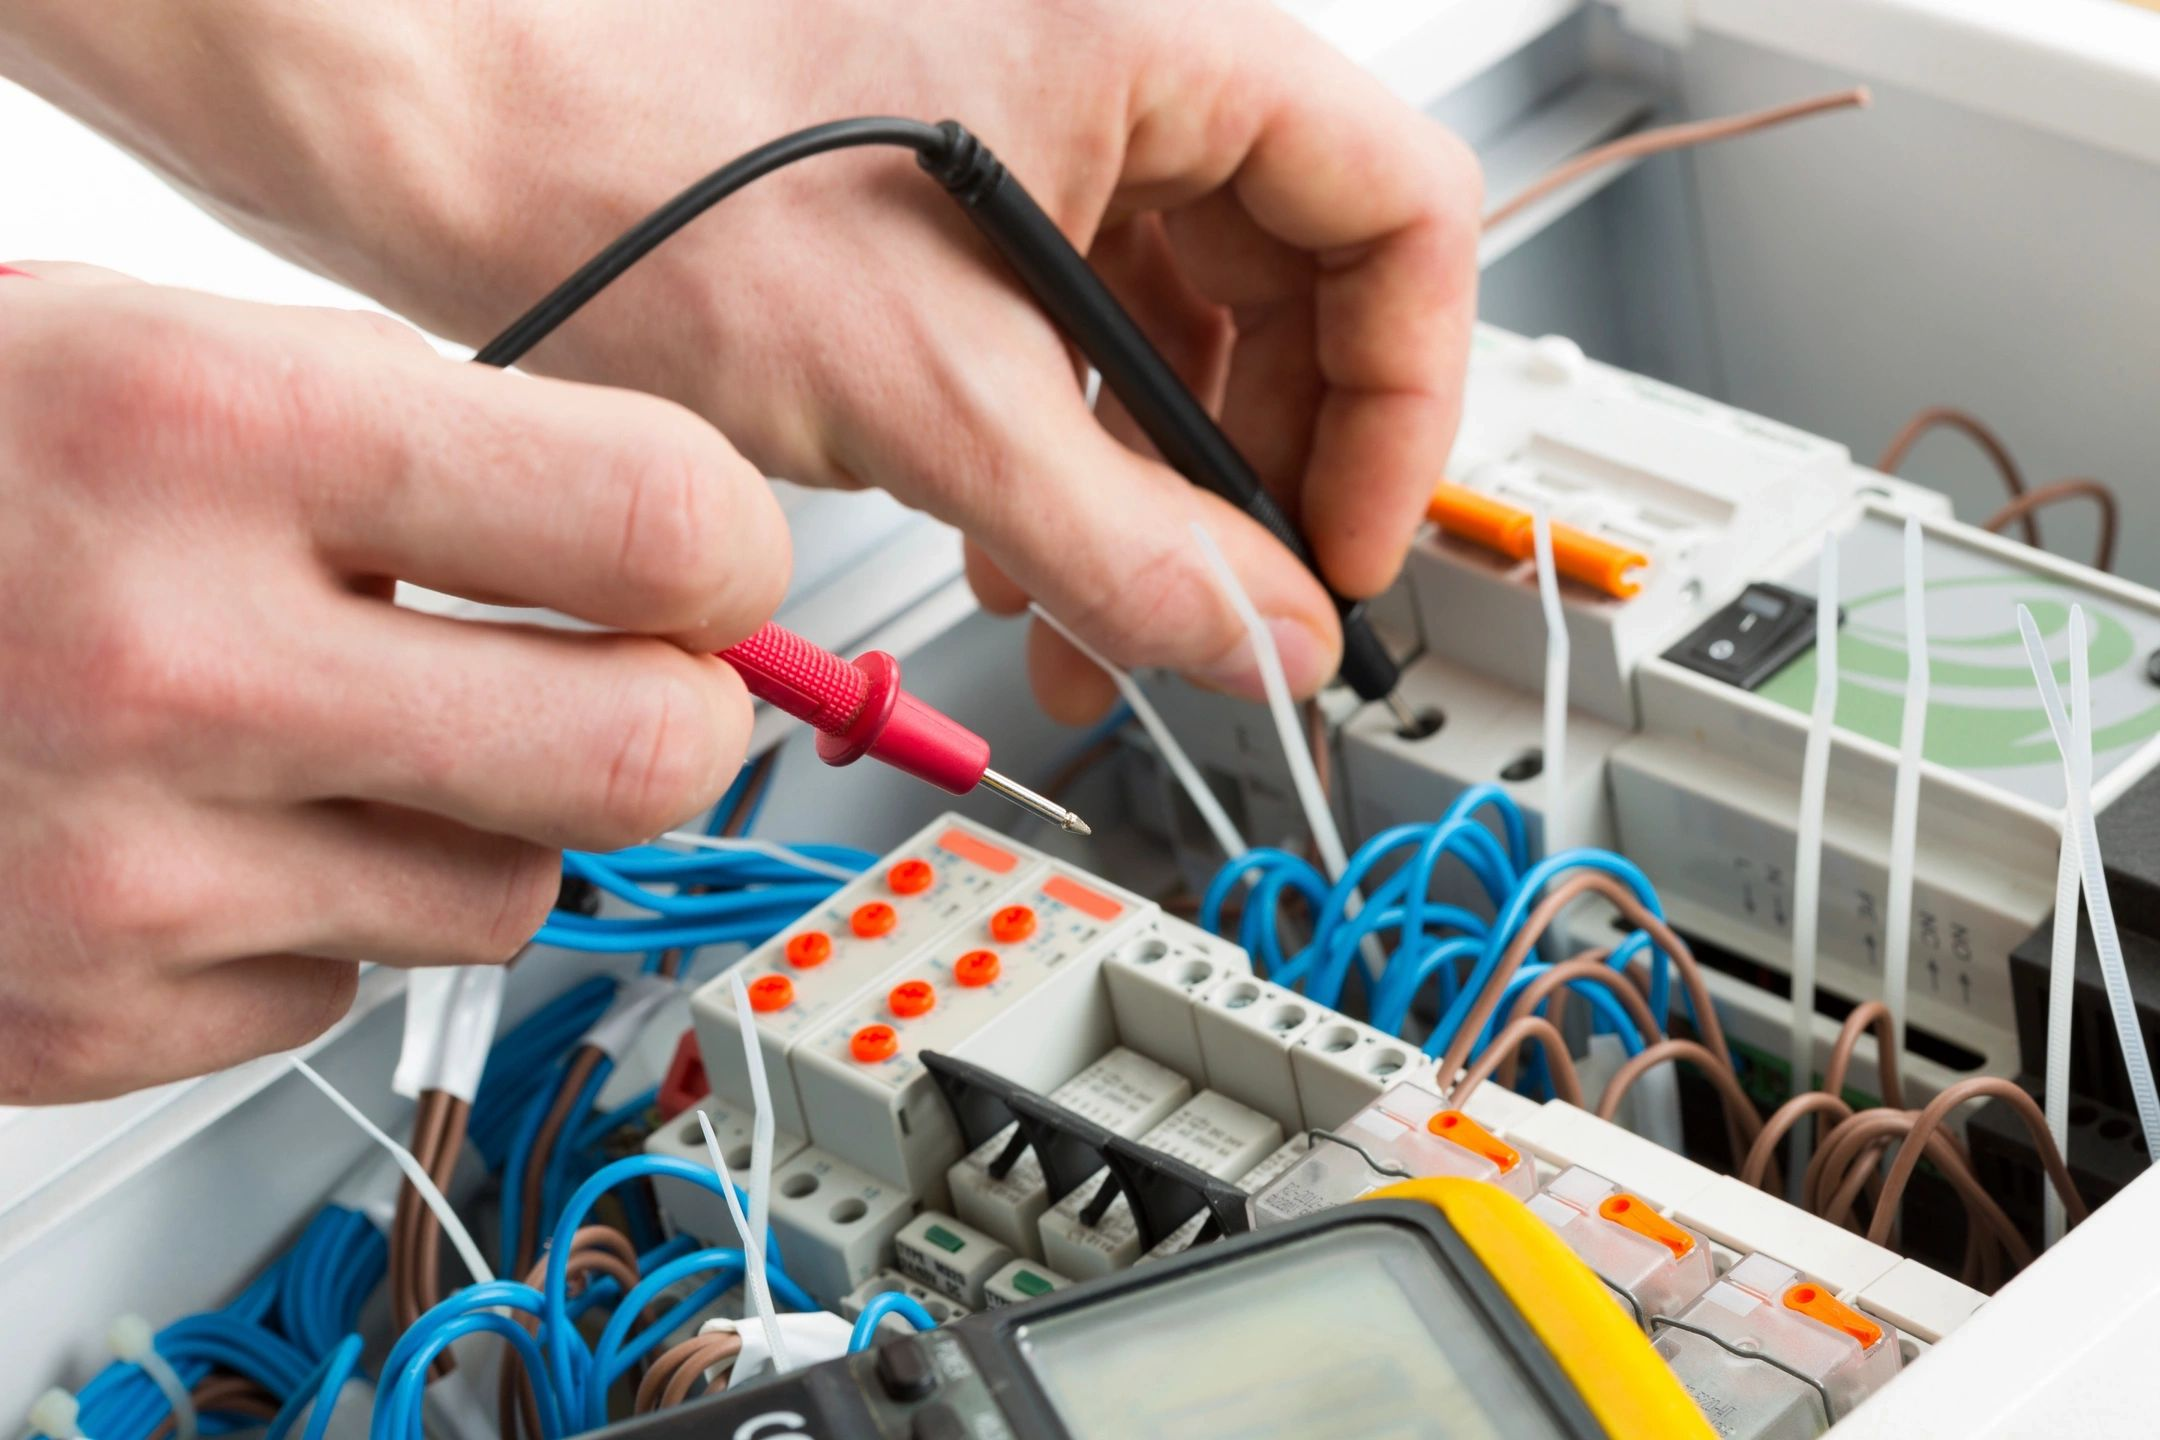 Electrician in Coimbatore, Electrician in Salem, Electrician in Erode,  Electrician in Coimbatore, E